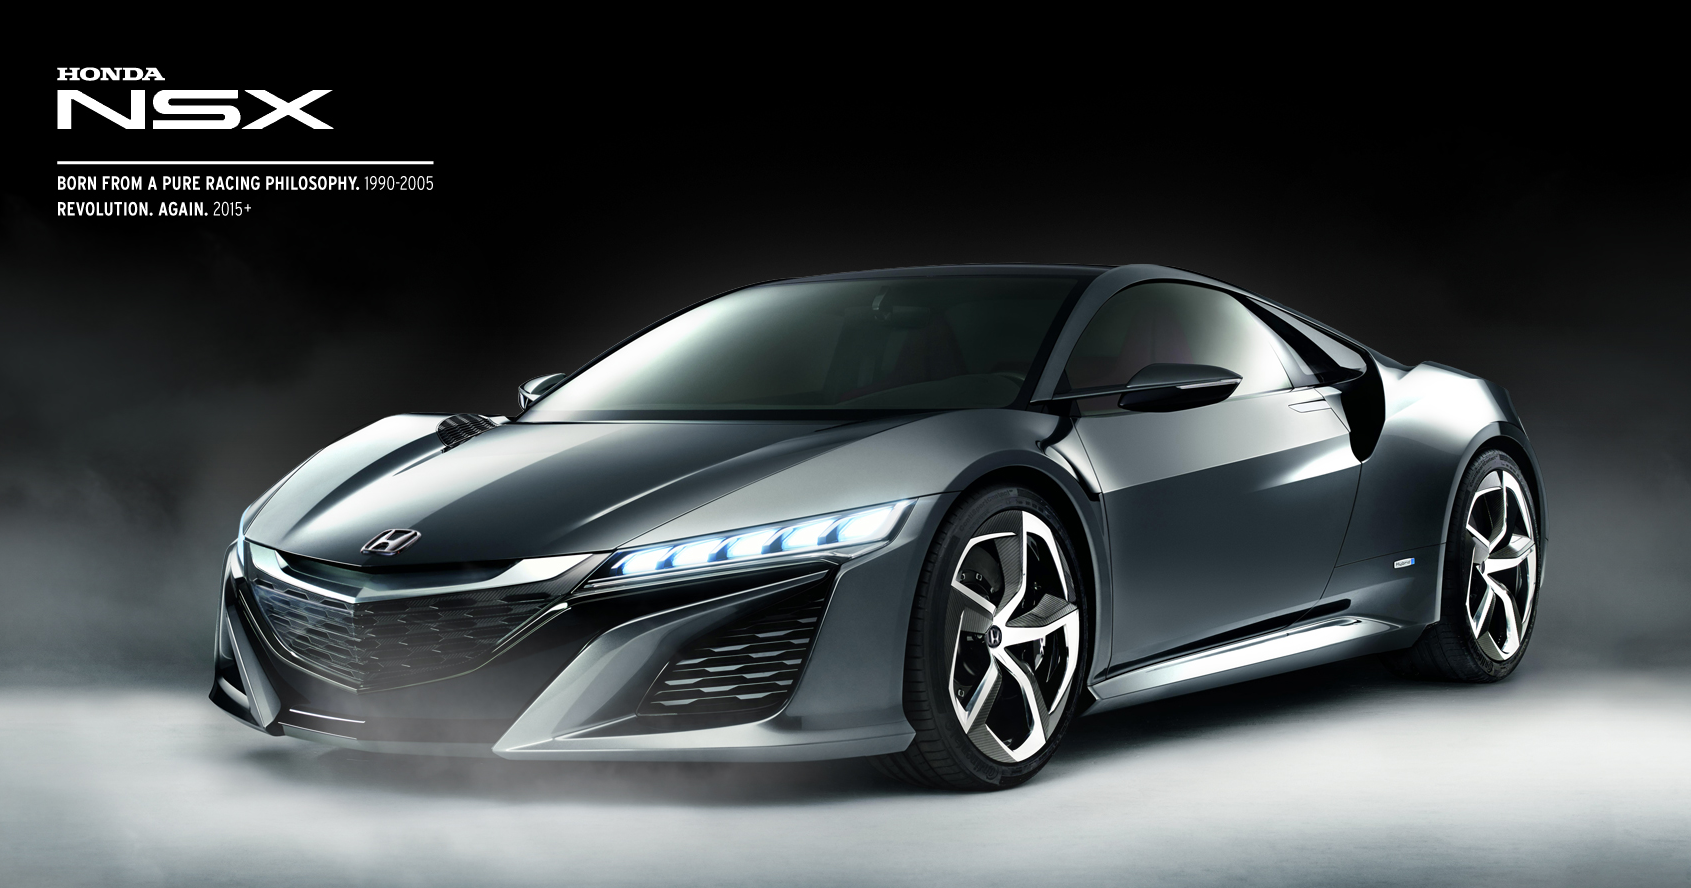 Superb 2015 Honda Nsx Gt   Cars New 2015 2016 : Cars New 2015 2016